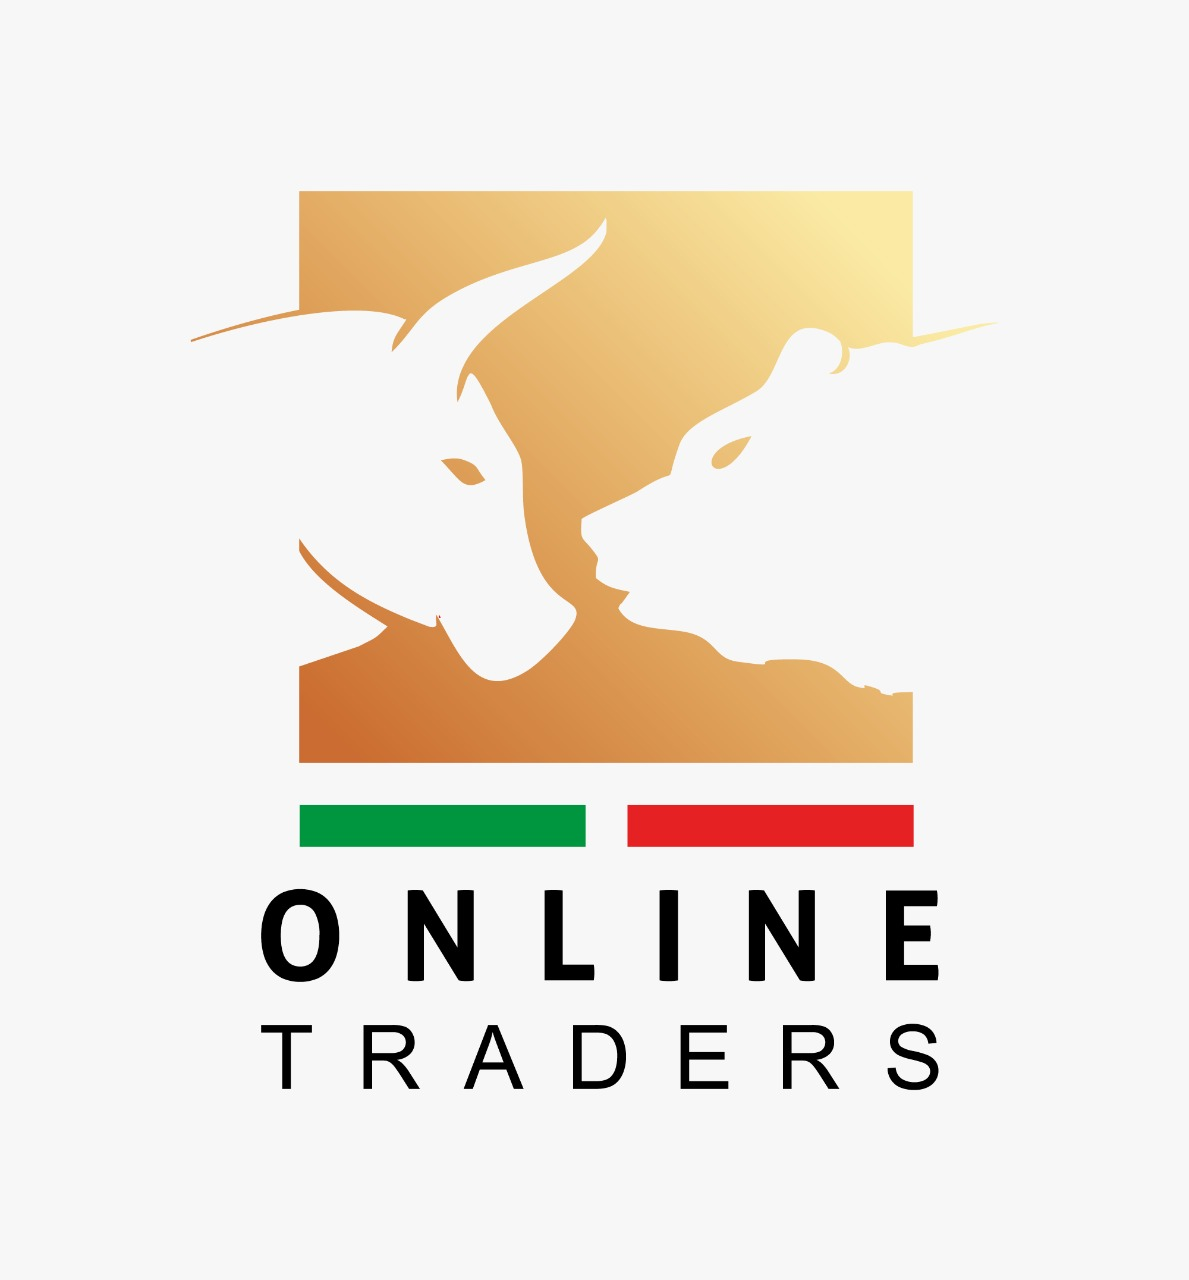 ONLINE TRADERS